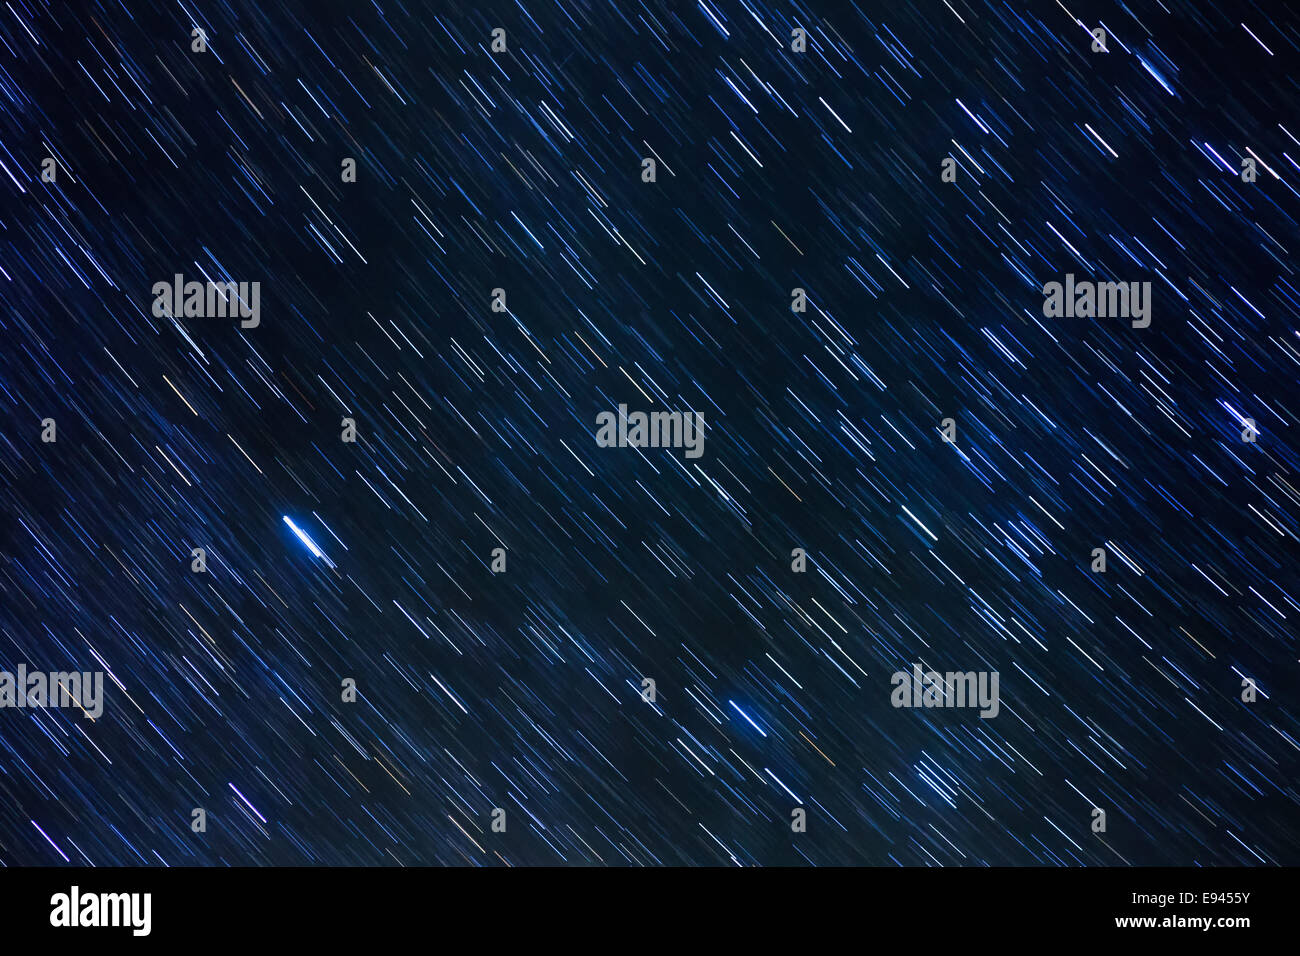 Stars of the Milky Way moving on the night sky during long exposure. Taken with 300mm lens and two minute exposure. - Stock Image